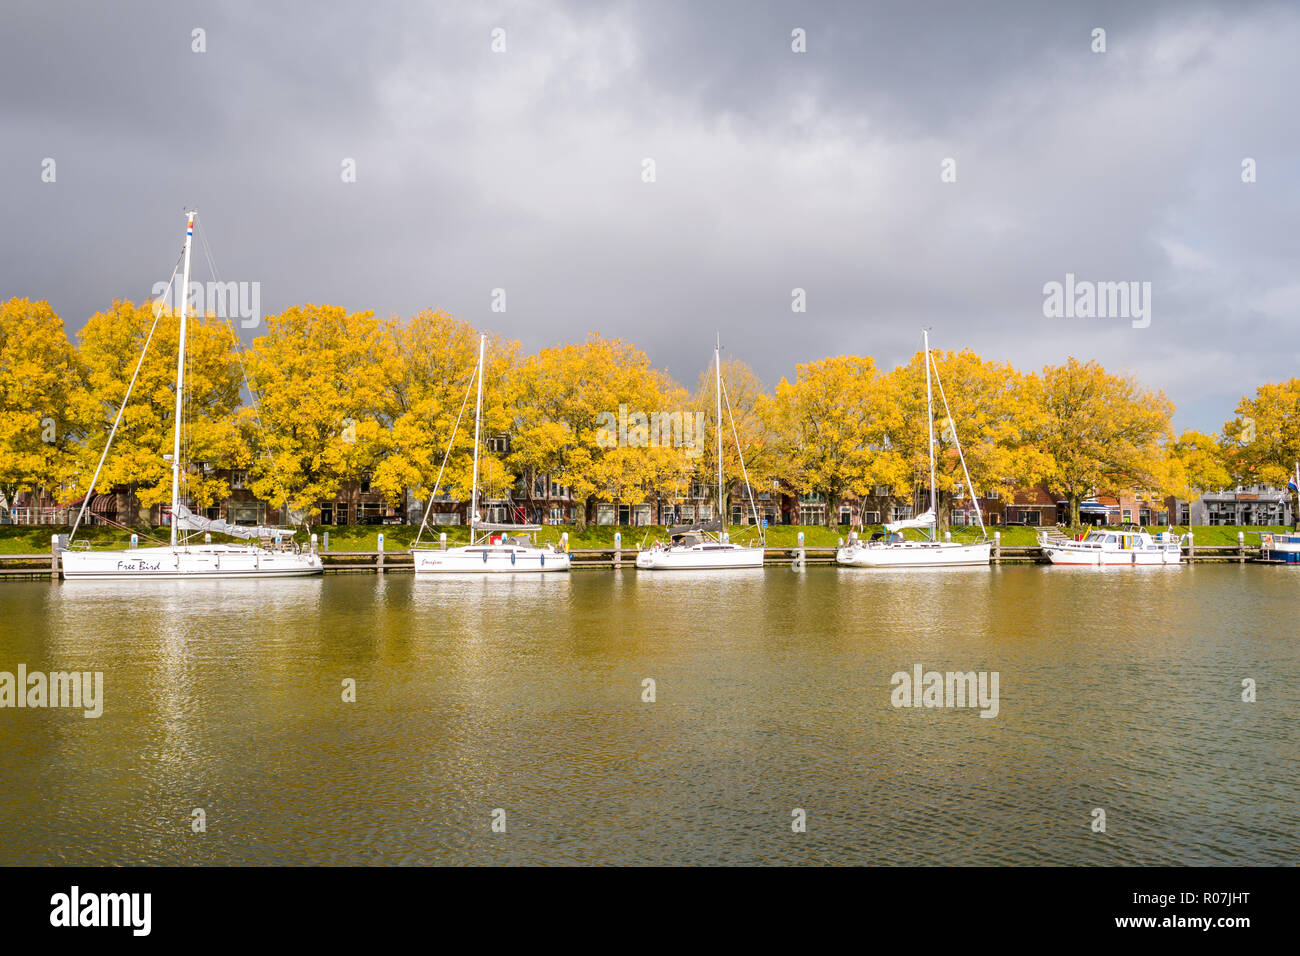 Autumn trees and sailing boats in old harbour of city of Enkhuizen, Noord-Holland, Netherlands - Stock Image